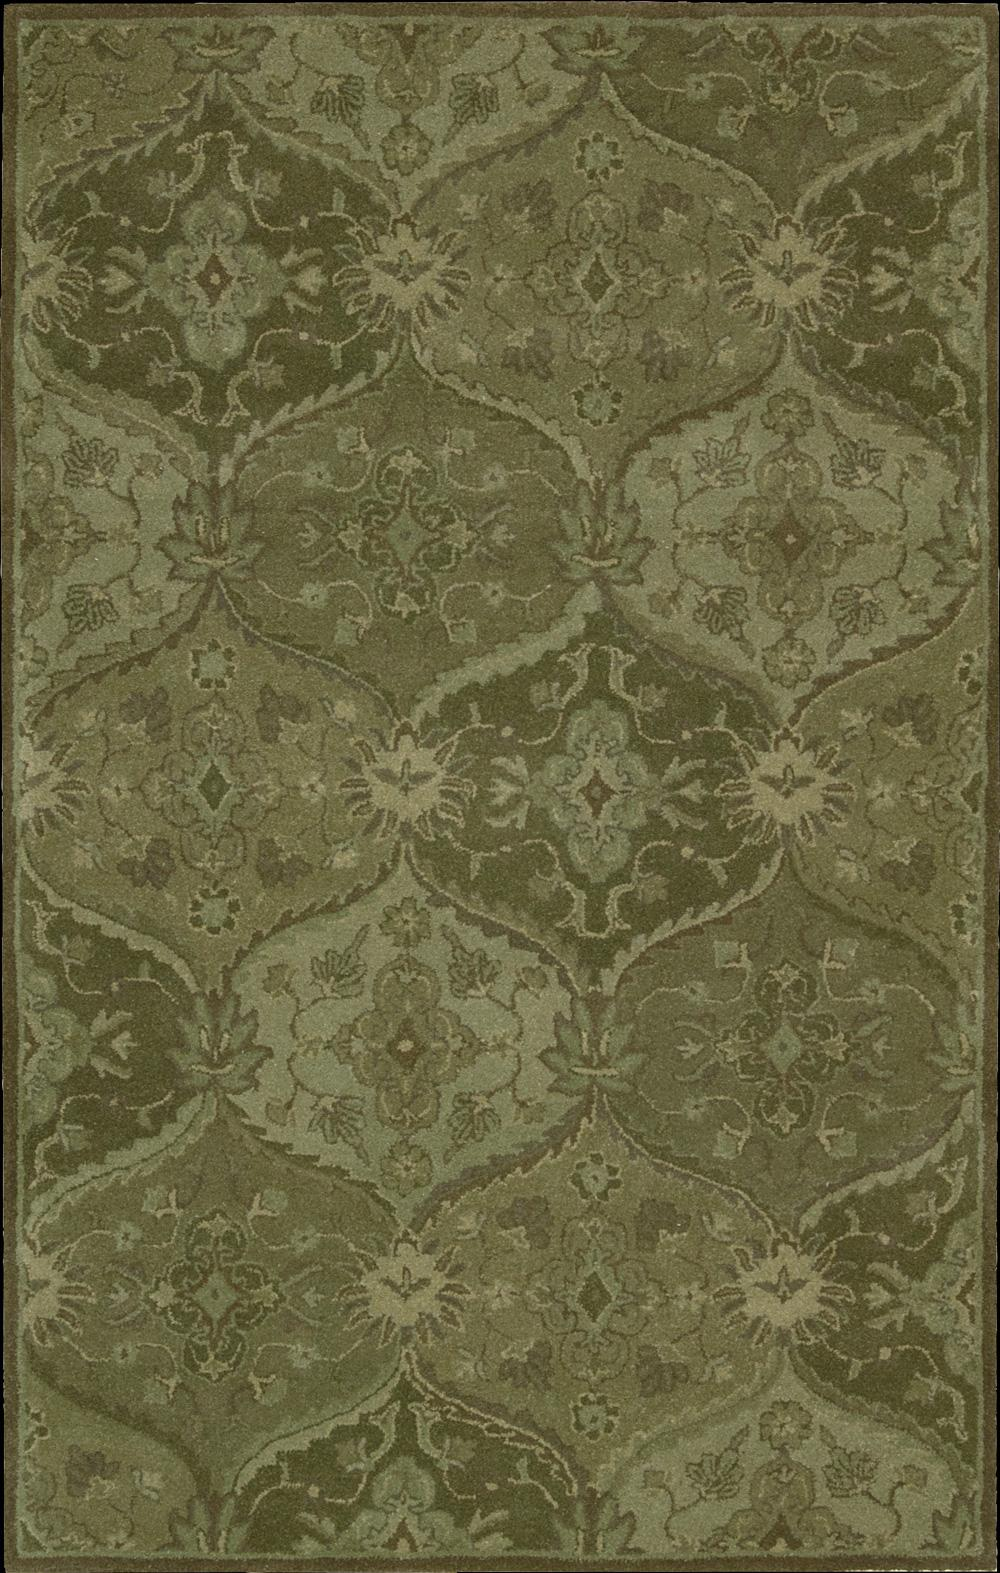 Nourison India House Area Rug 5' x 8' - Item Number: 16196